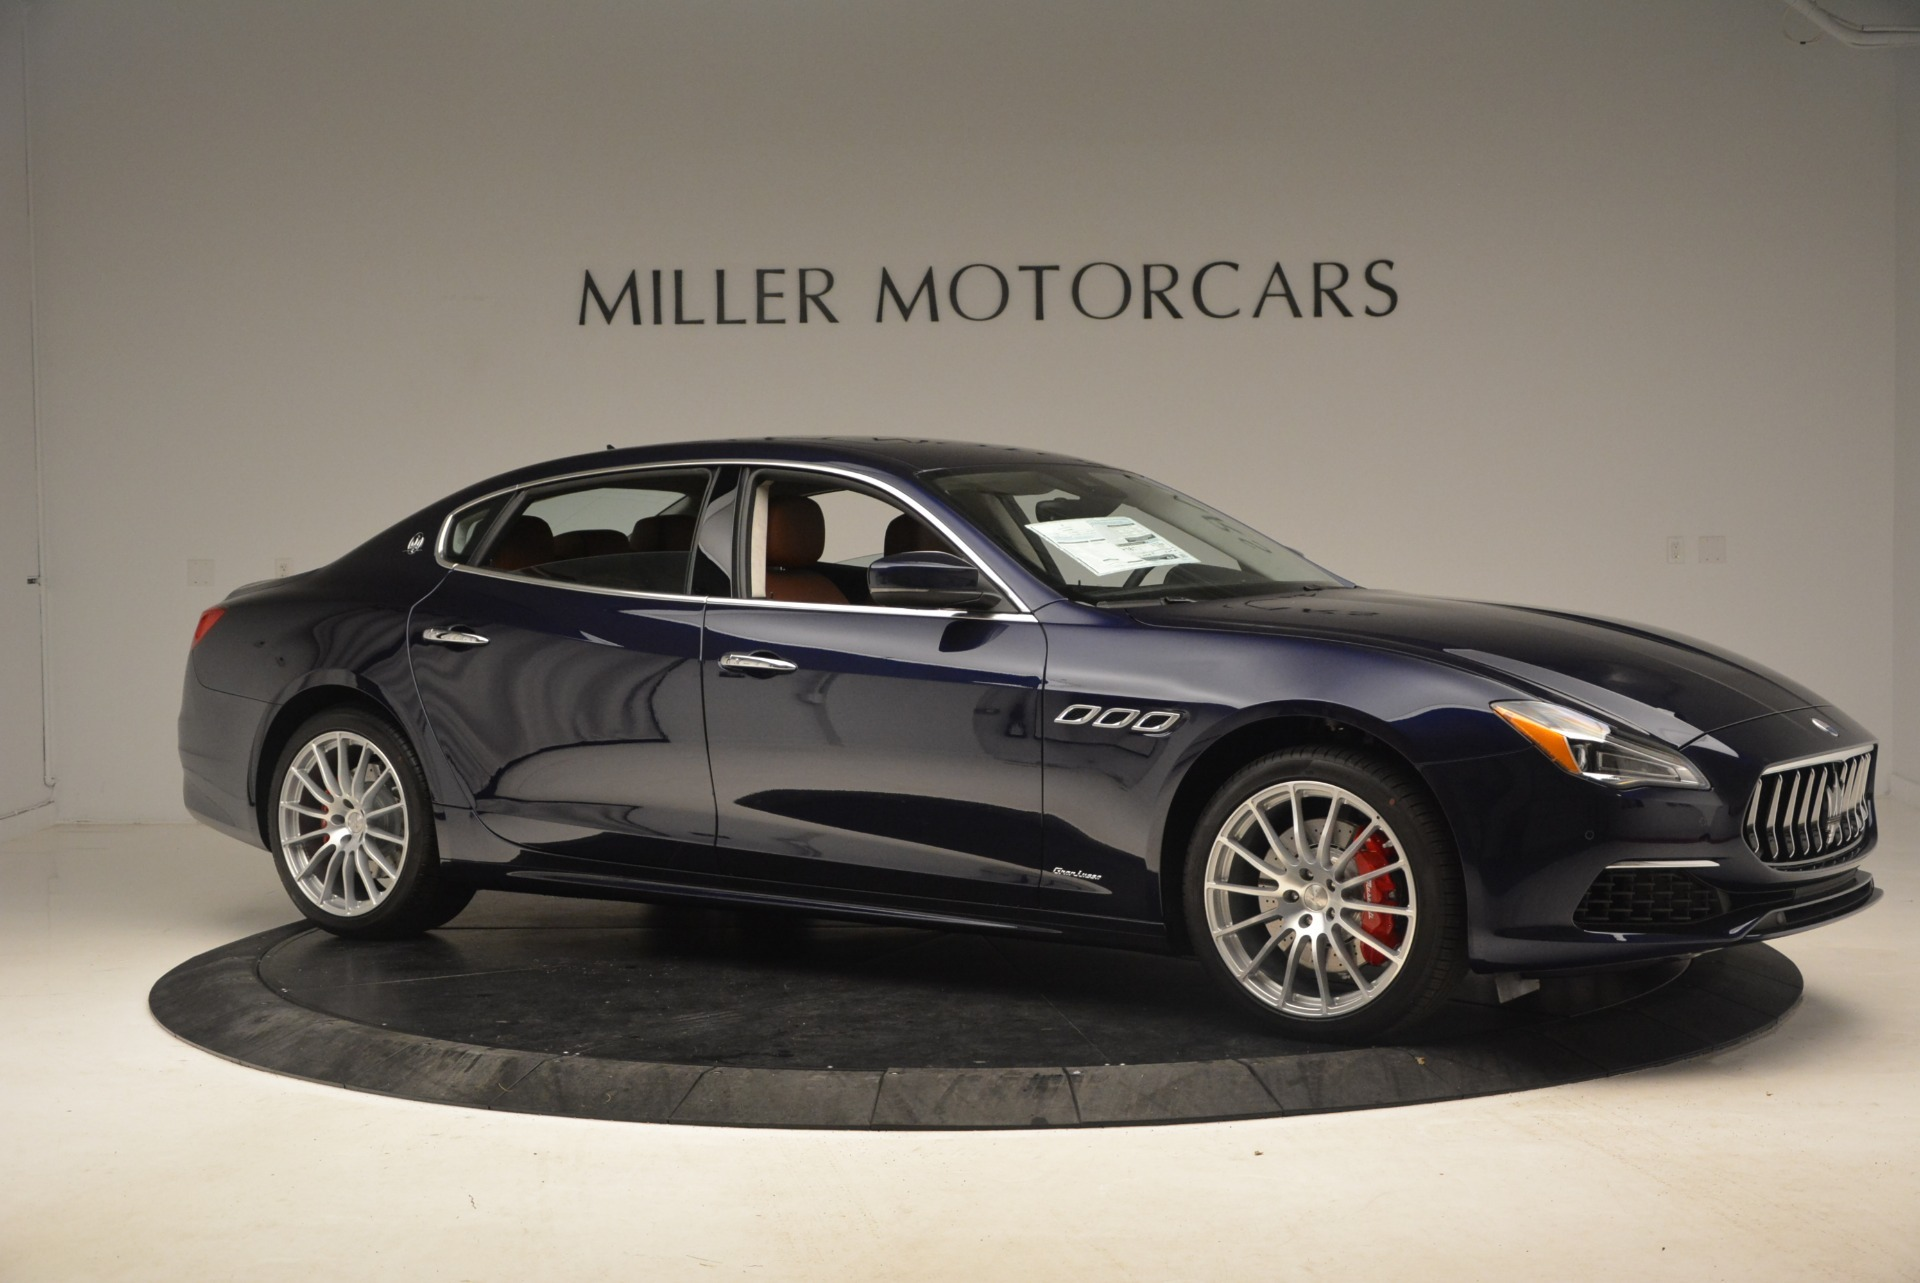 New 2019 Maserati Quattroporte S Q4 GranSport For Sale In Westport, CT 2591_p10